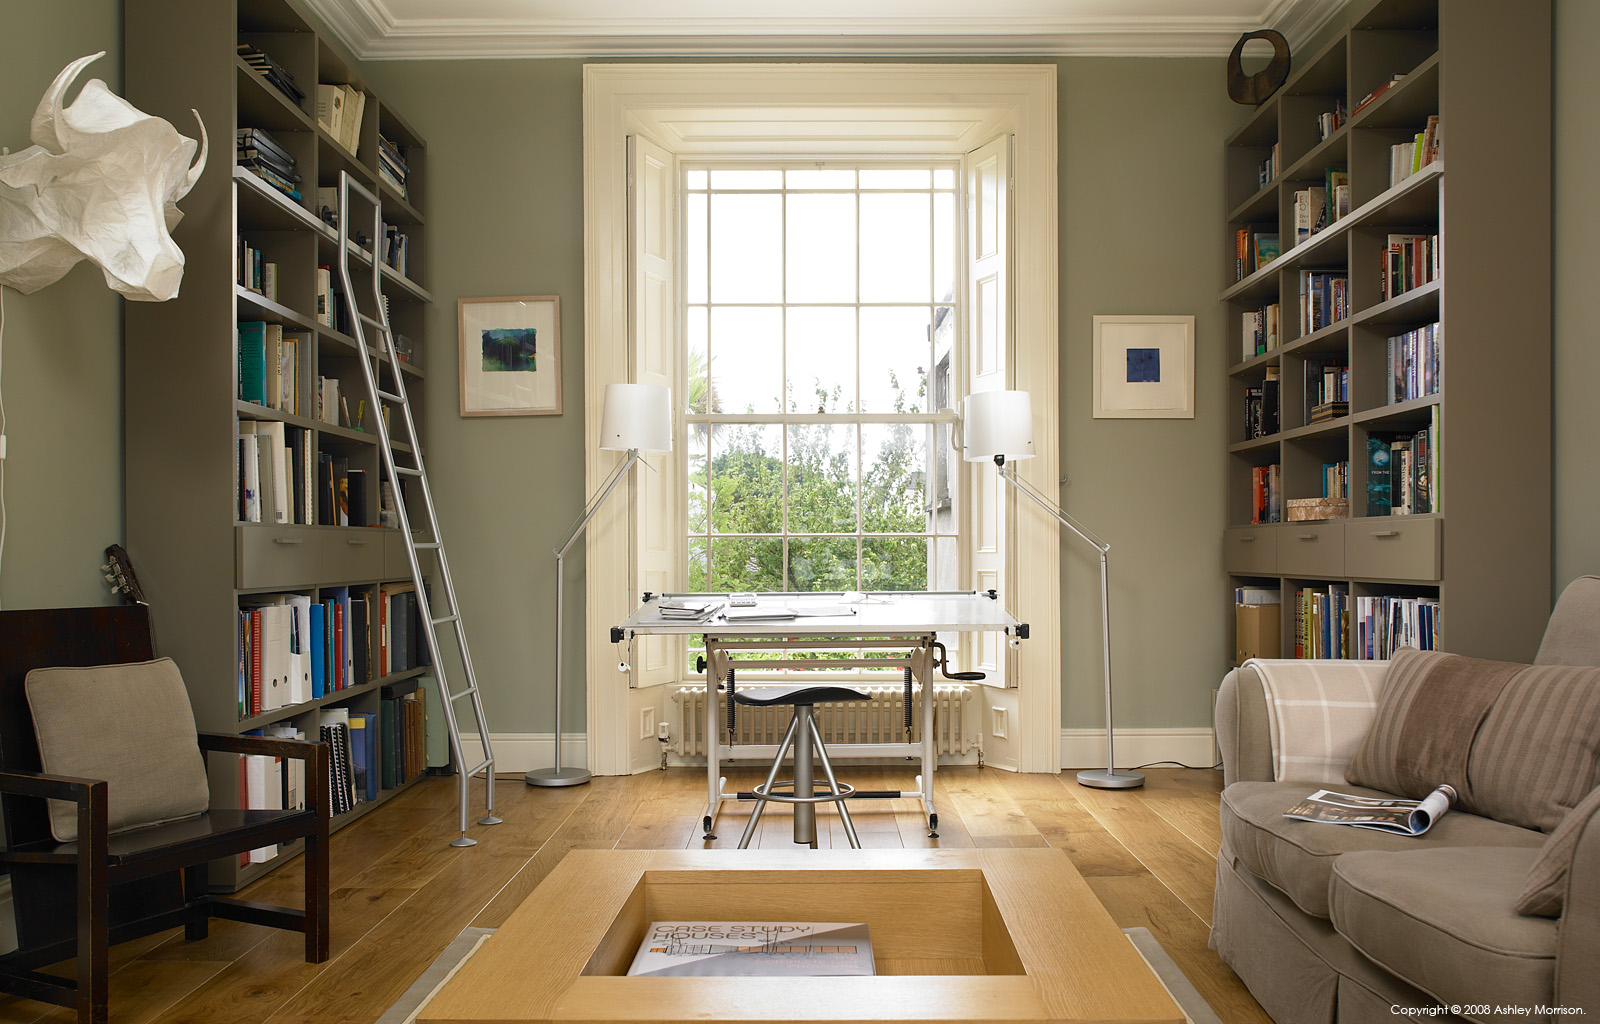 The 2nd floor study in Louise and Maoilíosa Reynolds' early-Victorian terrace house in the Sandycove area of Dublin.